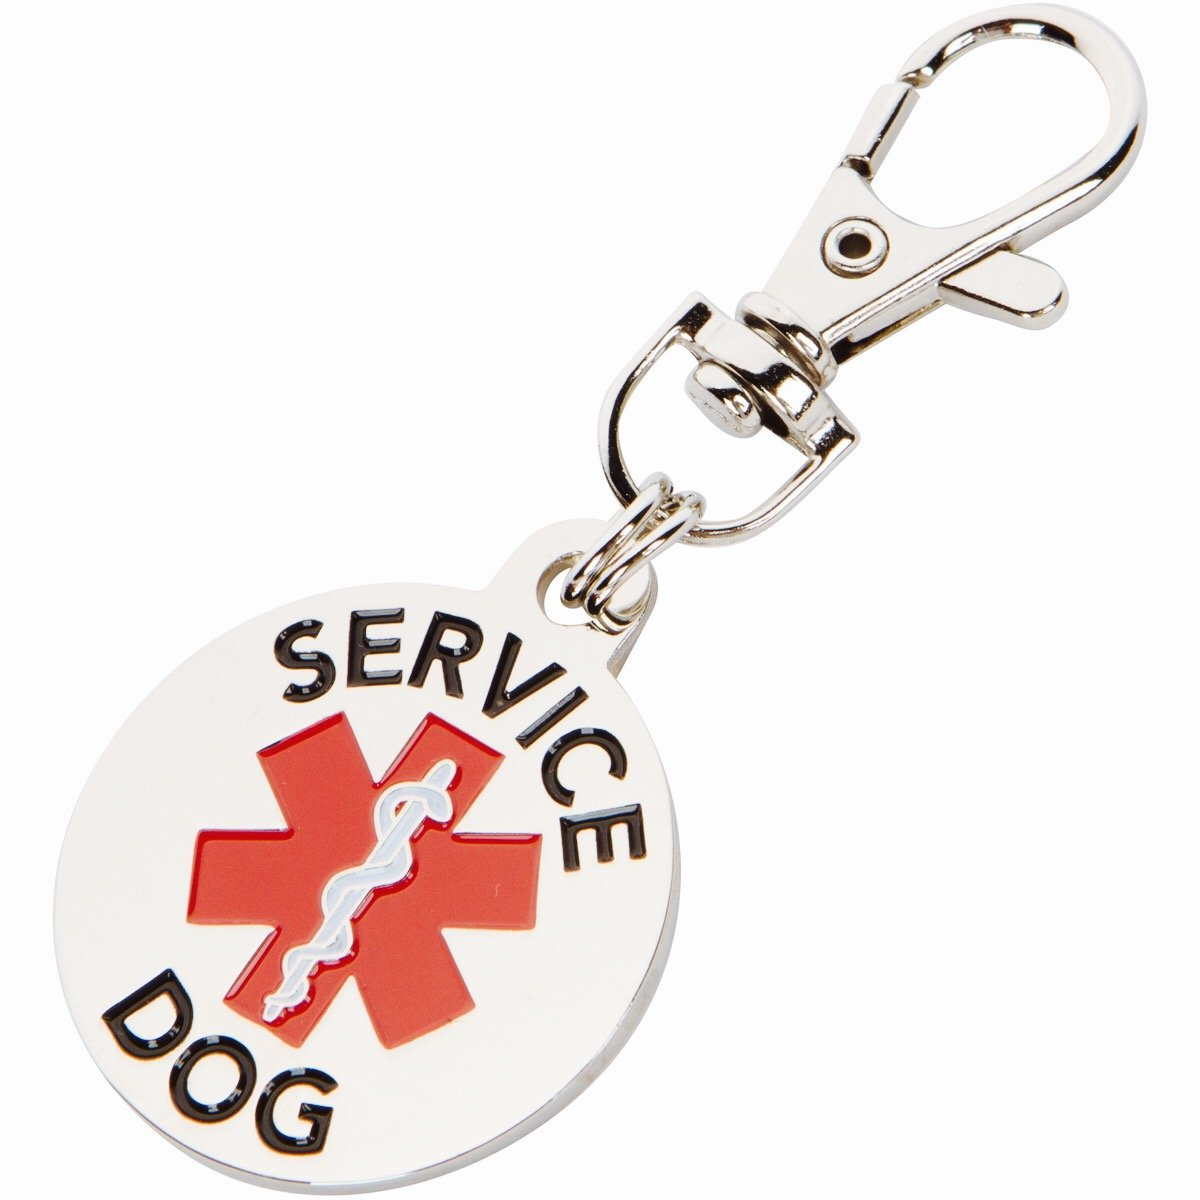 Double Sided Service Dog With Red Medical Alert Symbol 125 Inch